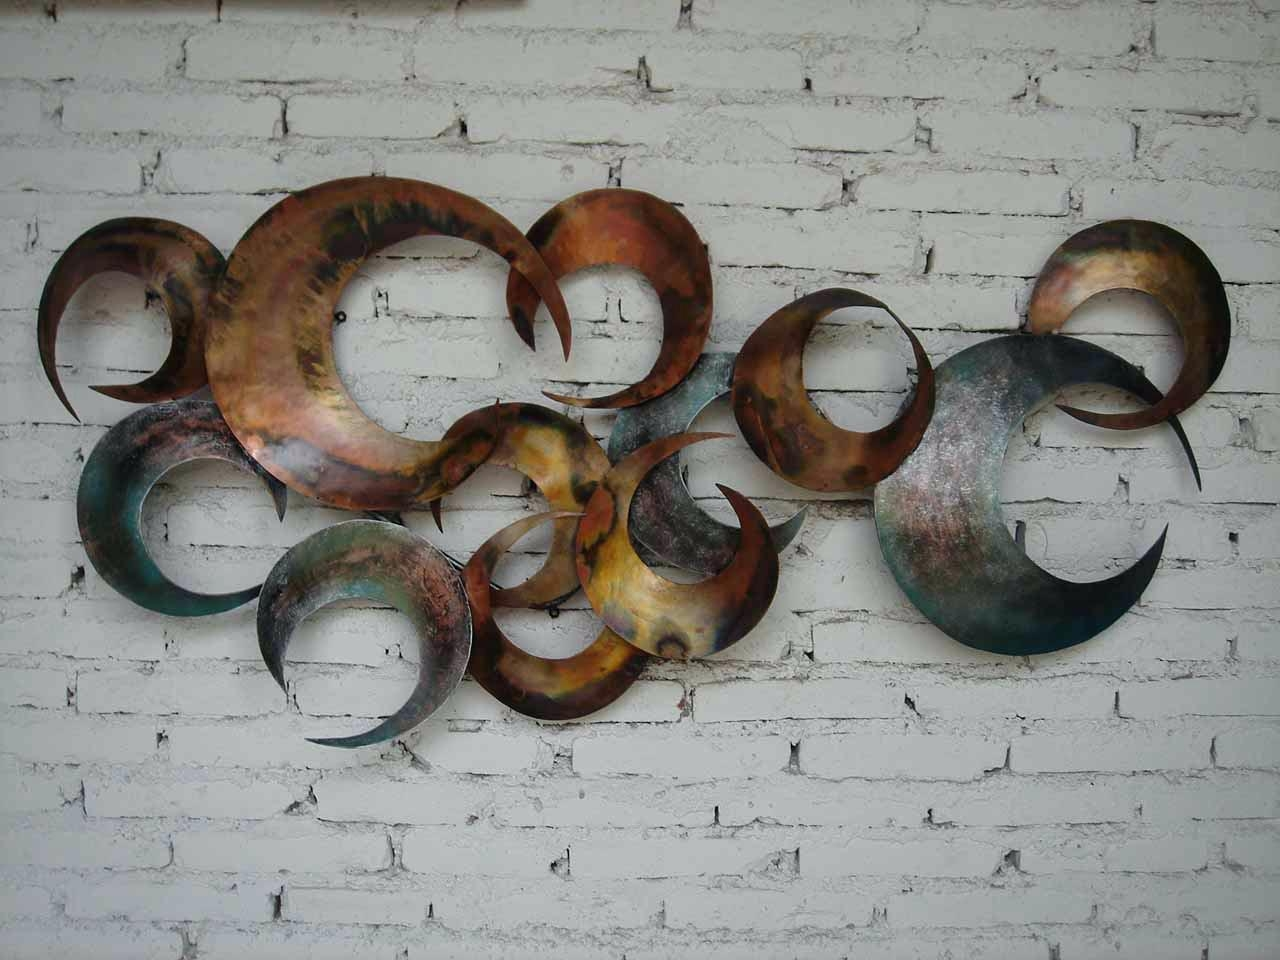 Wall Ideas : Contemporary Metal Sculpture Wall Art Radiance Inside Contemporary Metal Wall Art Sculpture (Image 19 of 20)